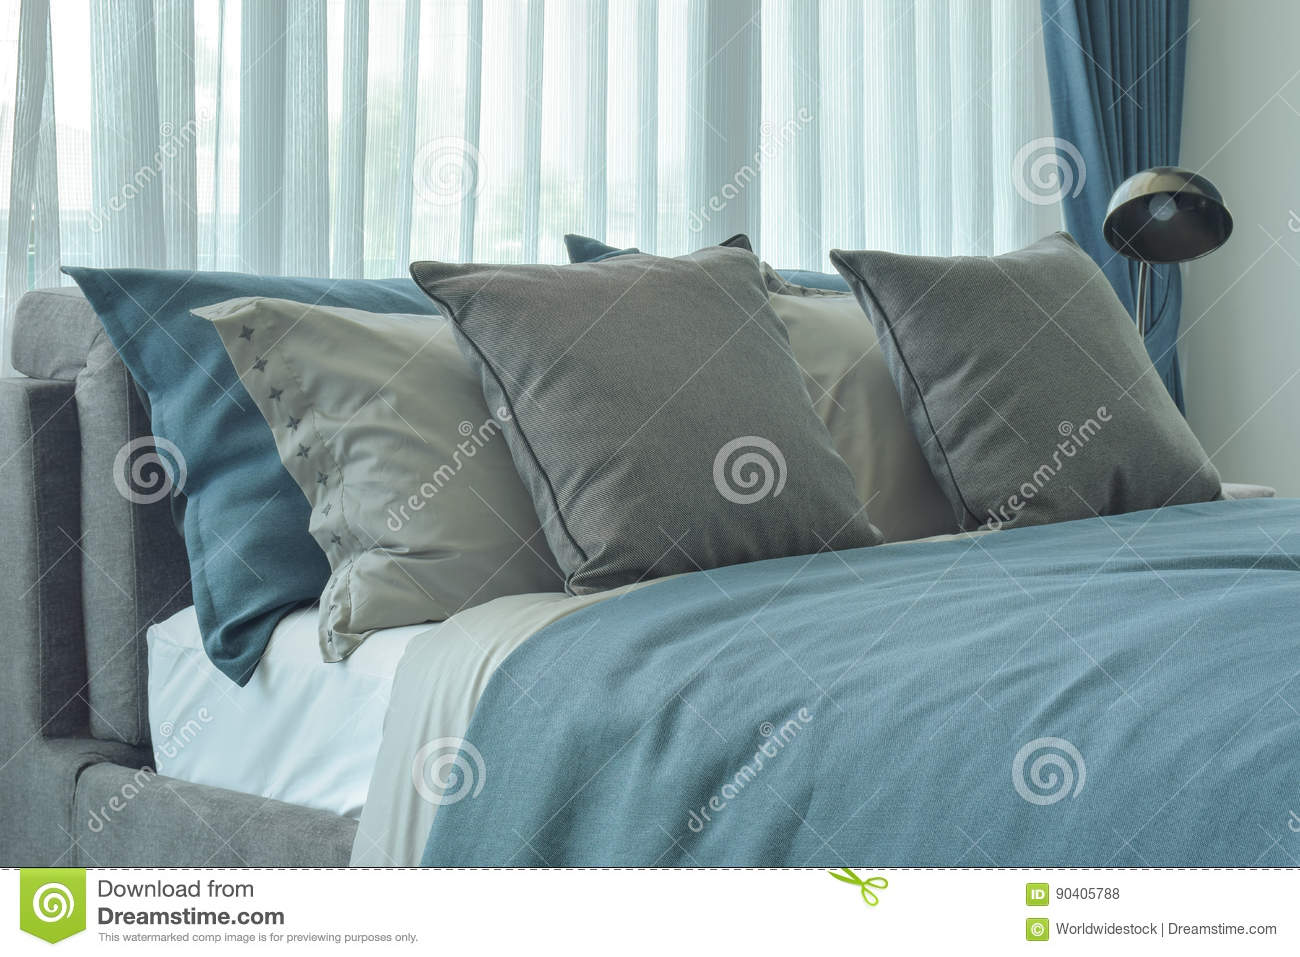 Gray and deep blue pillows setting on bed in deep blue color scheme